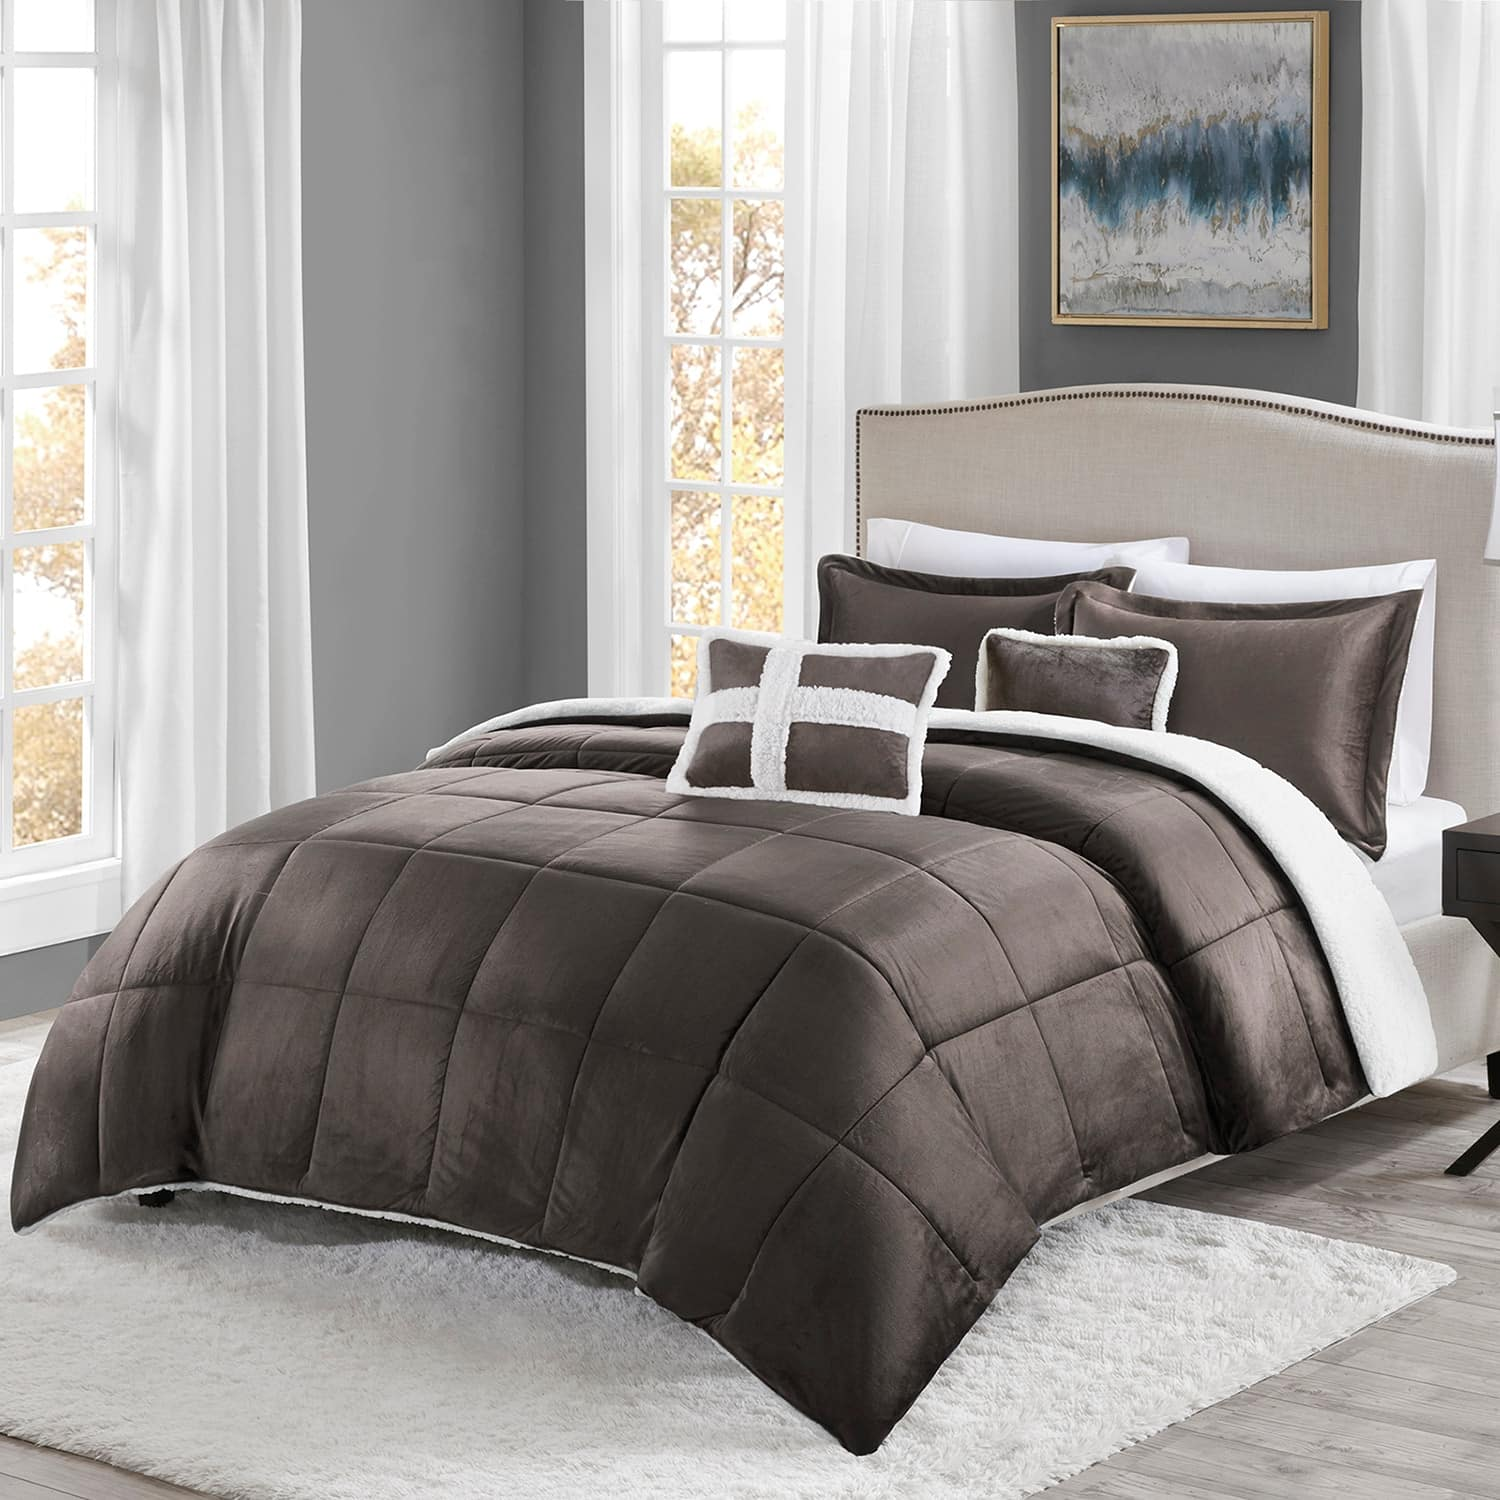 Kohls - True North mink to Sherpa Comforter set F/Q or Twin 15.99 + SH -   reg 159.99